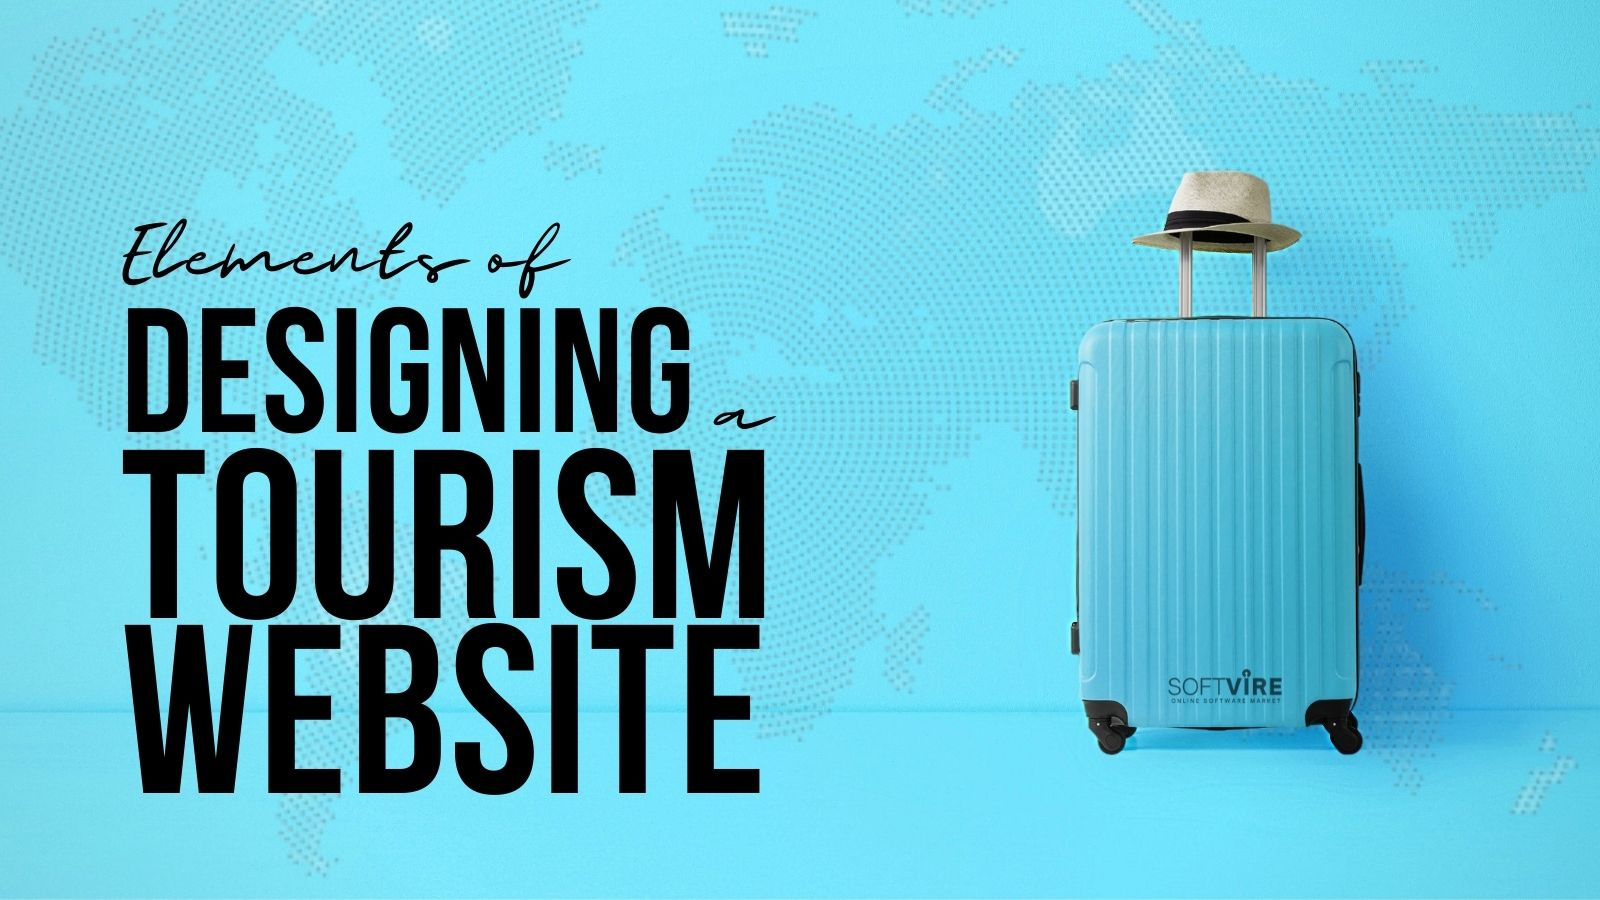 Elements of Designing a Tourism Website - Softvire Global Market